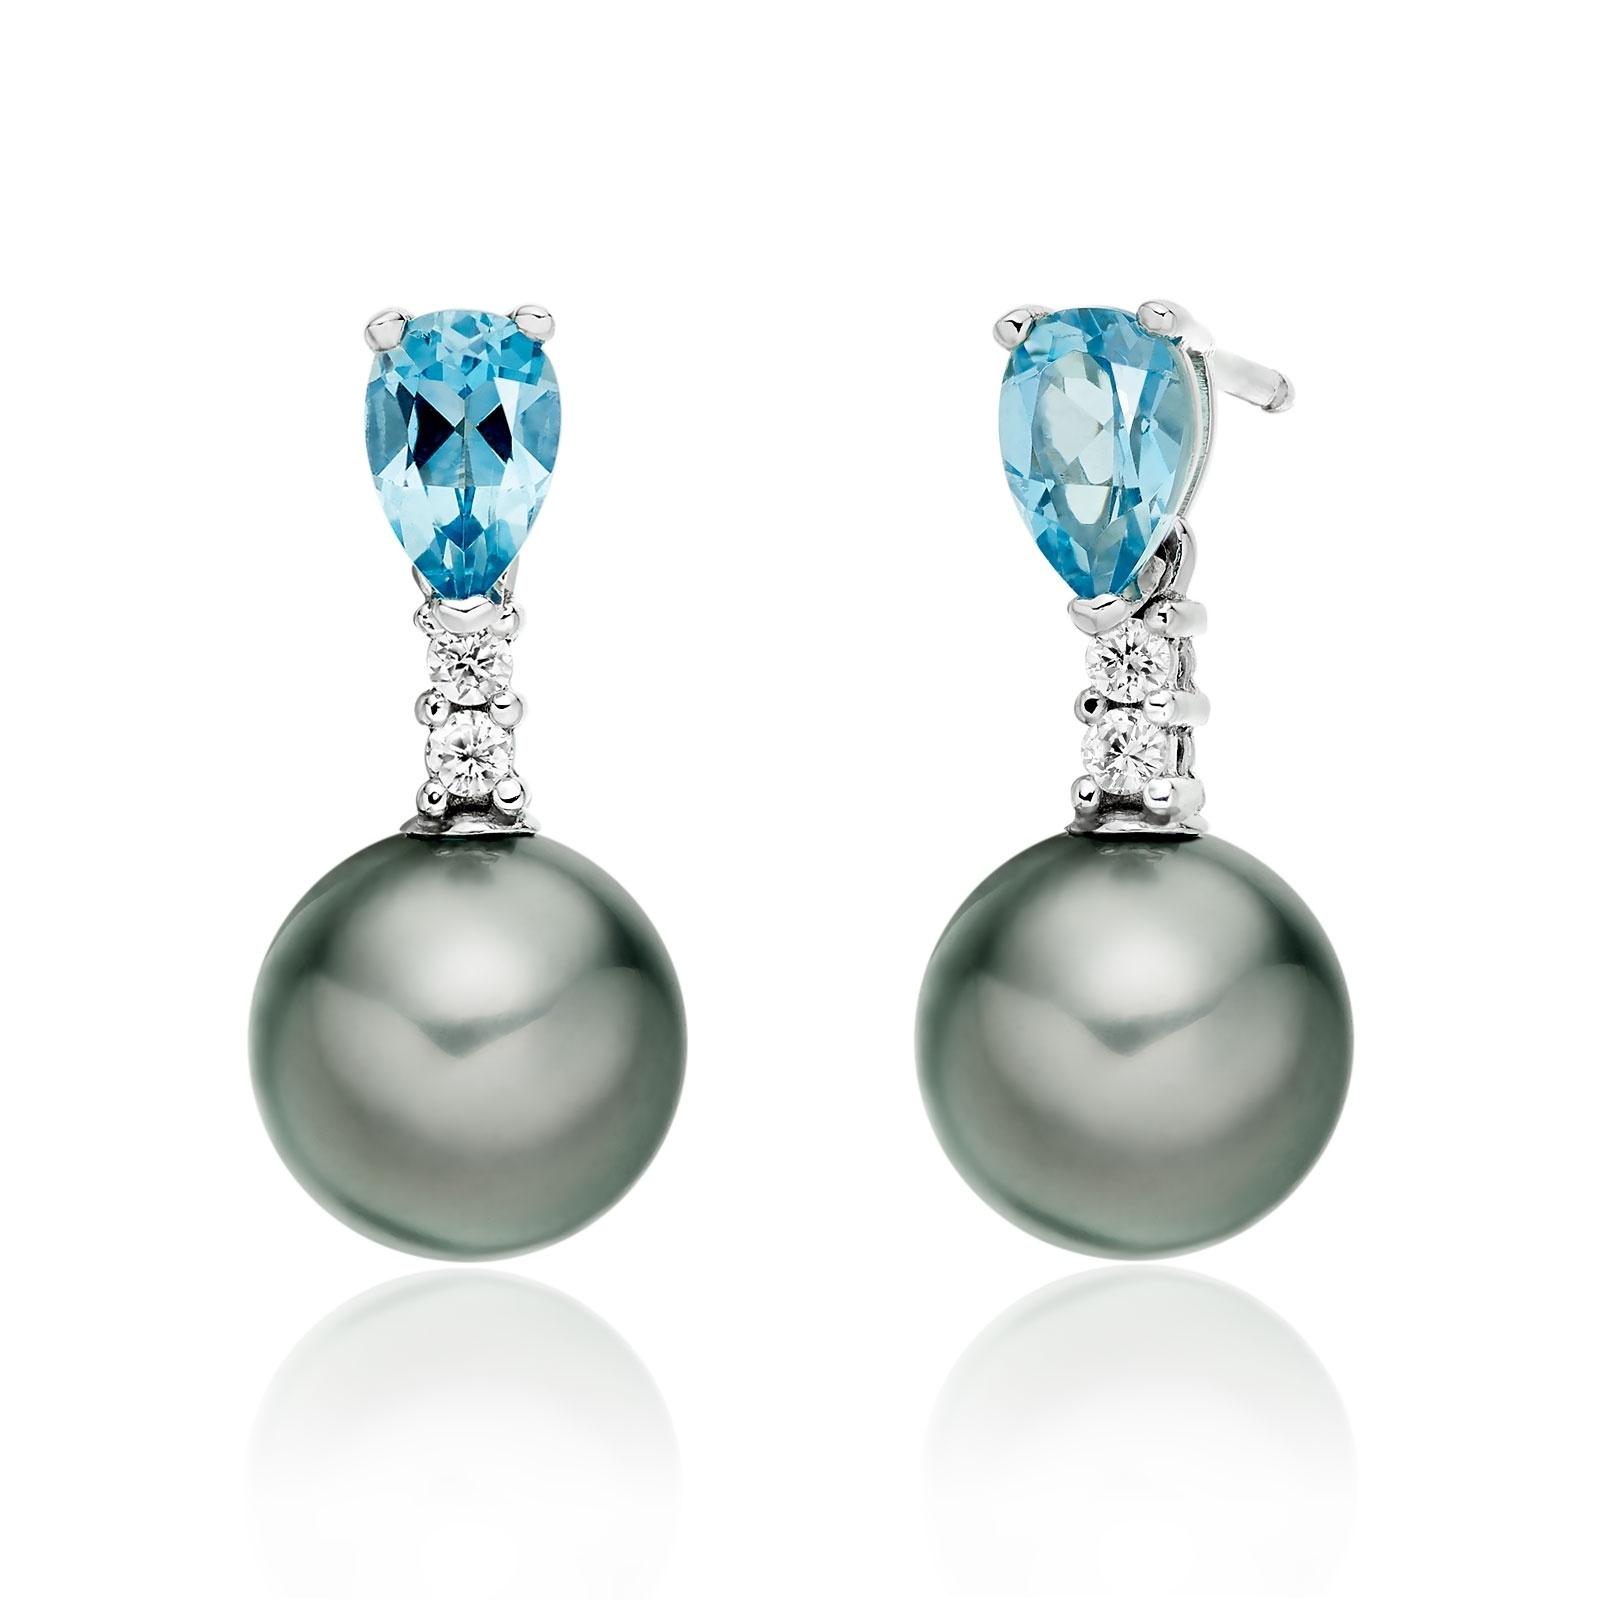 Classic Pear Drop Earrings in Aquamarine-TEGRWG0997-1